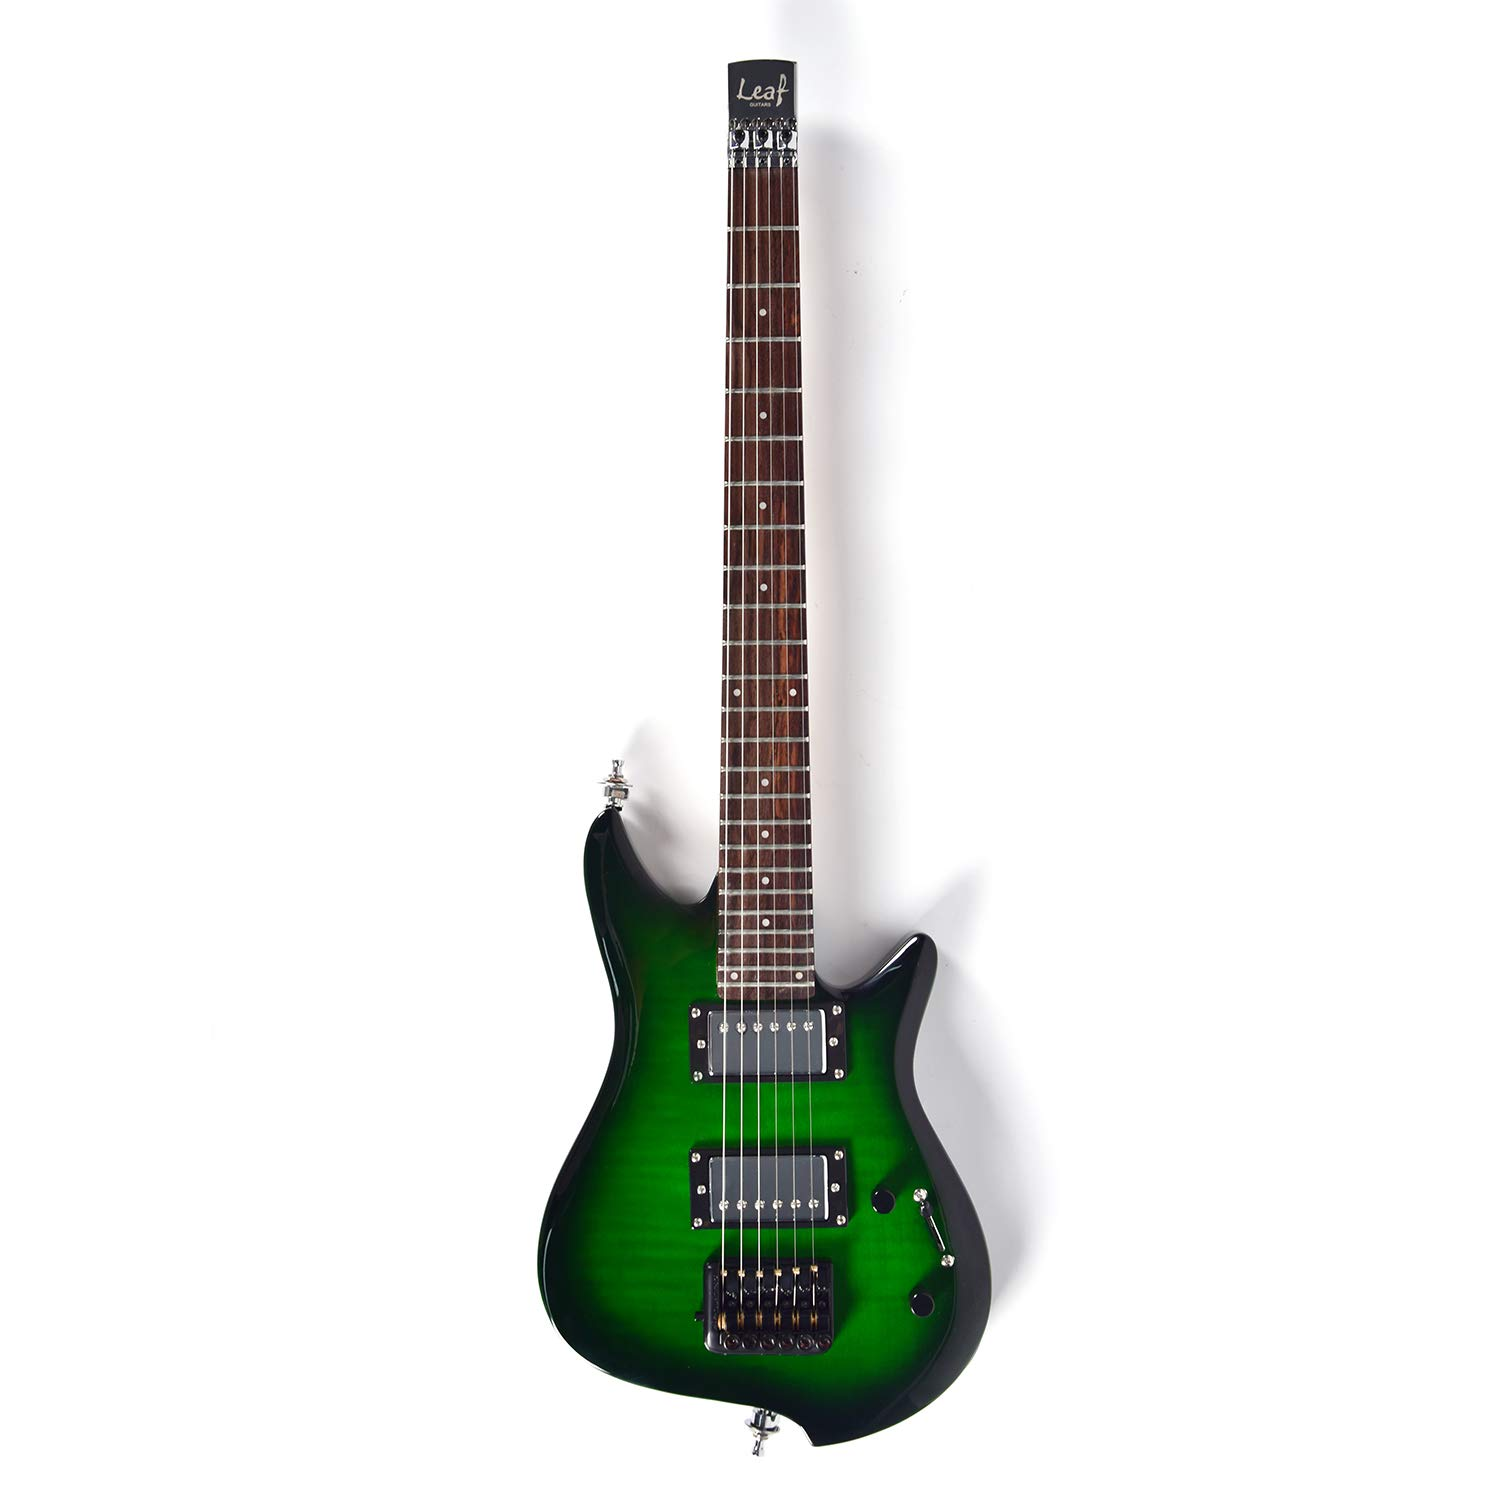 Asmuse Headless Electric Guitar Overhead Travel Guitar Small But Full-scale LEAF Guitar Ultra-Light For Travel and Performance Green by Asmuse